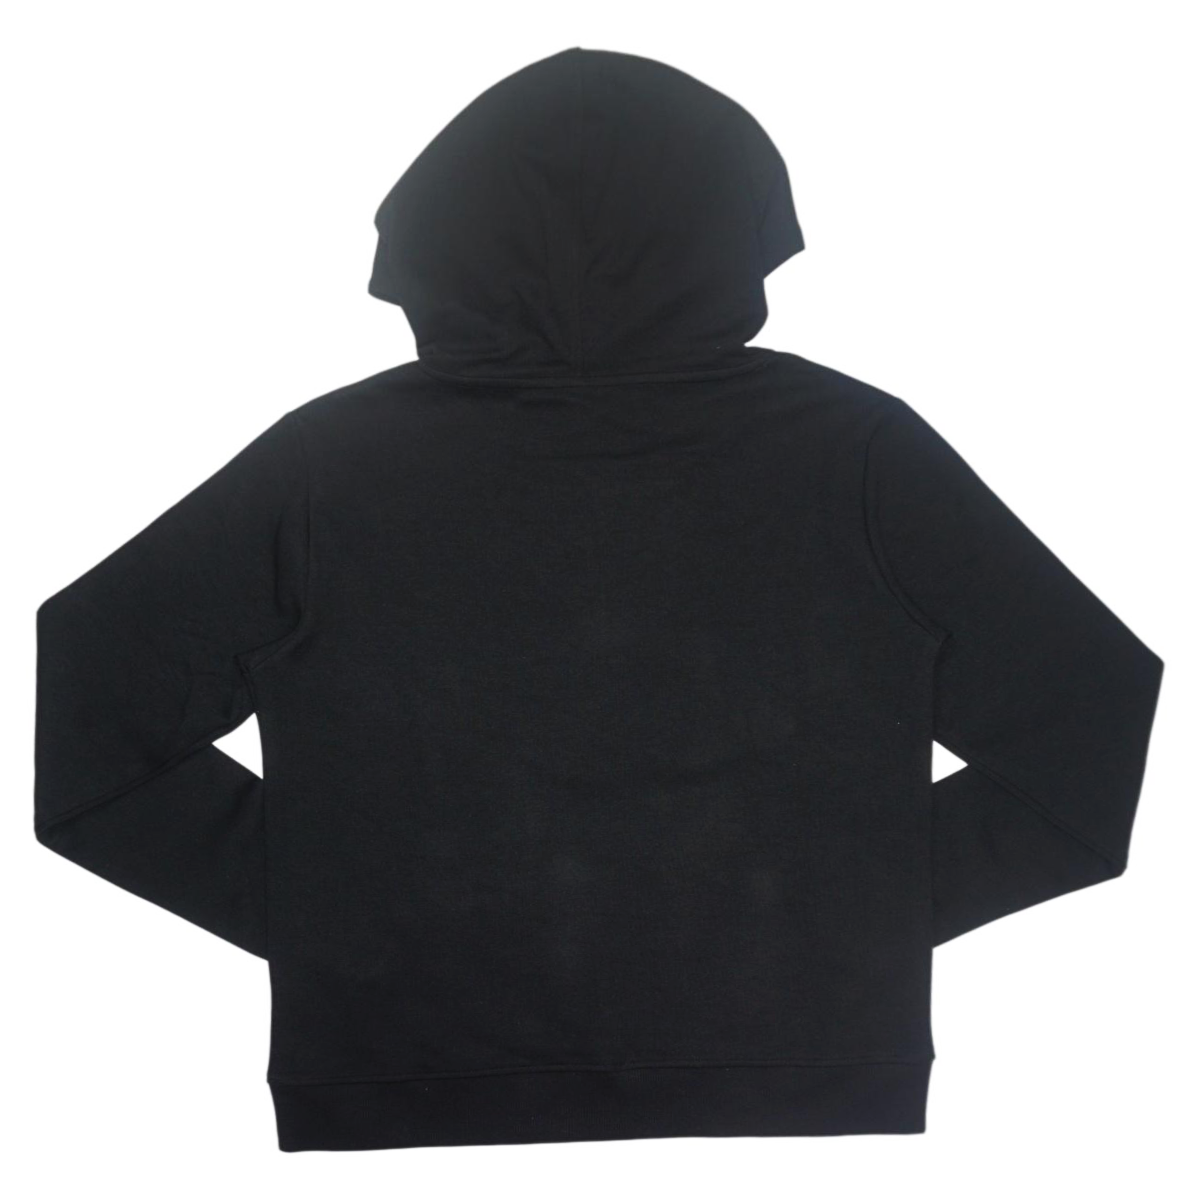 Greedy Money Hoodie Jogger Set (Black) /C3